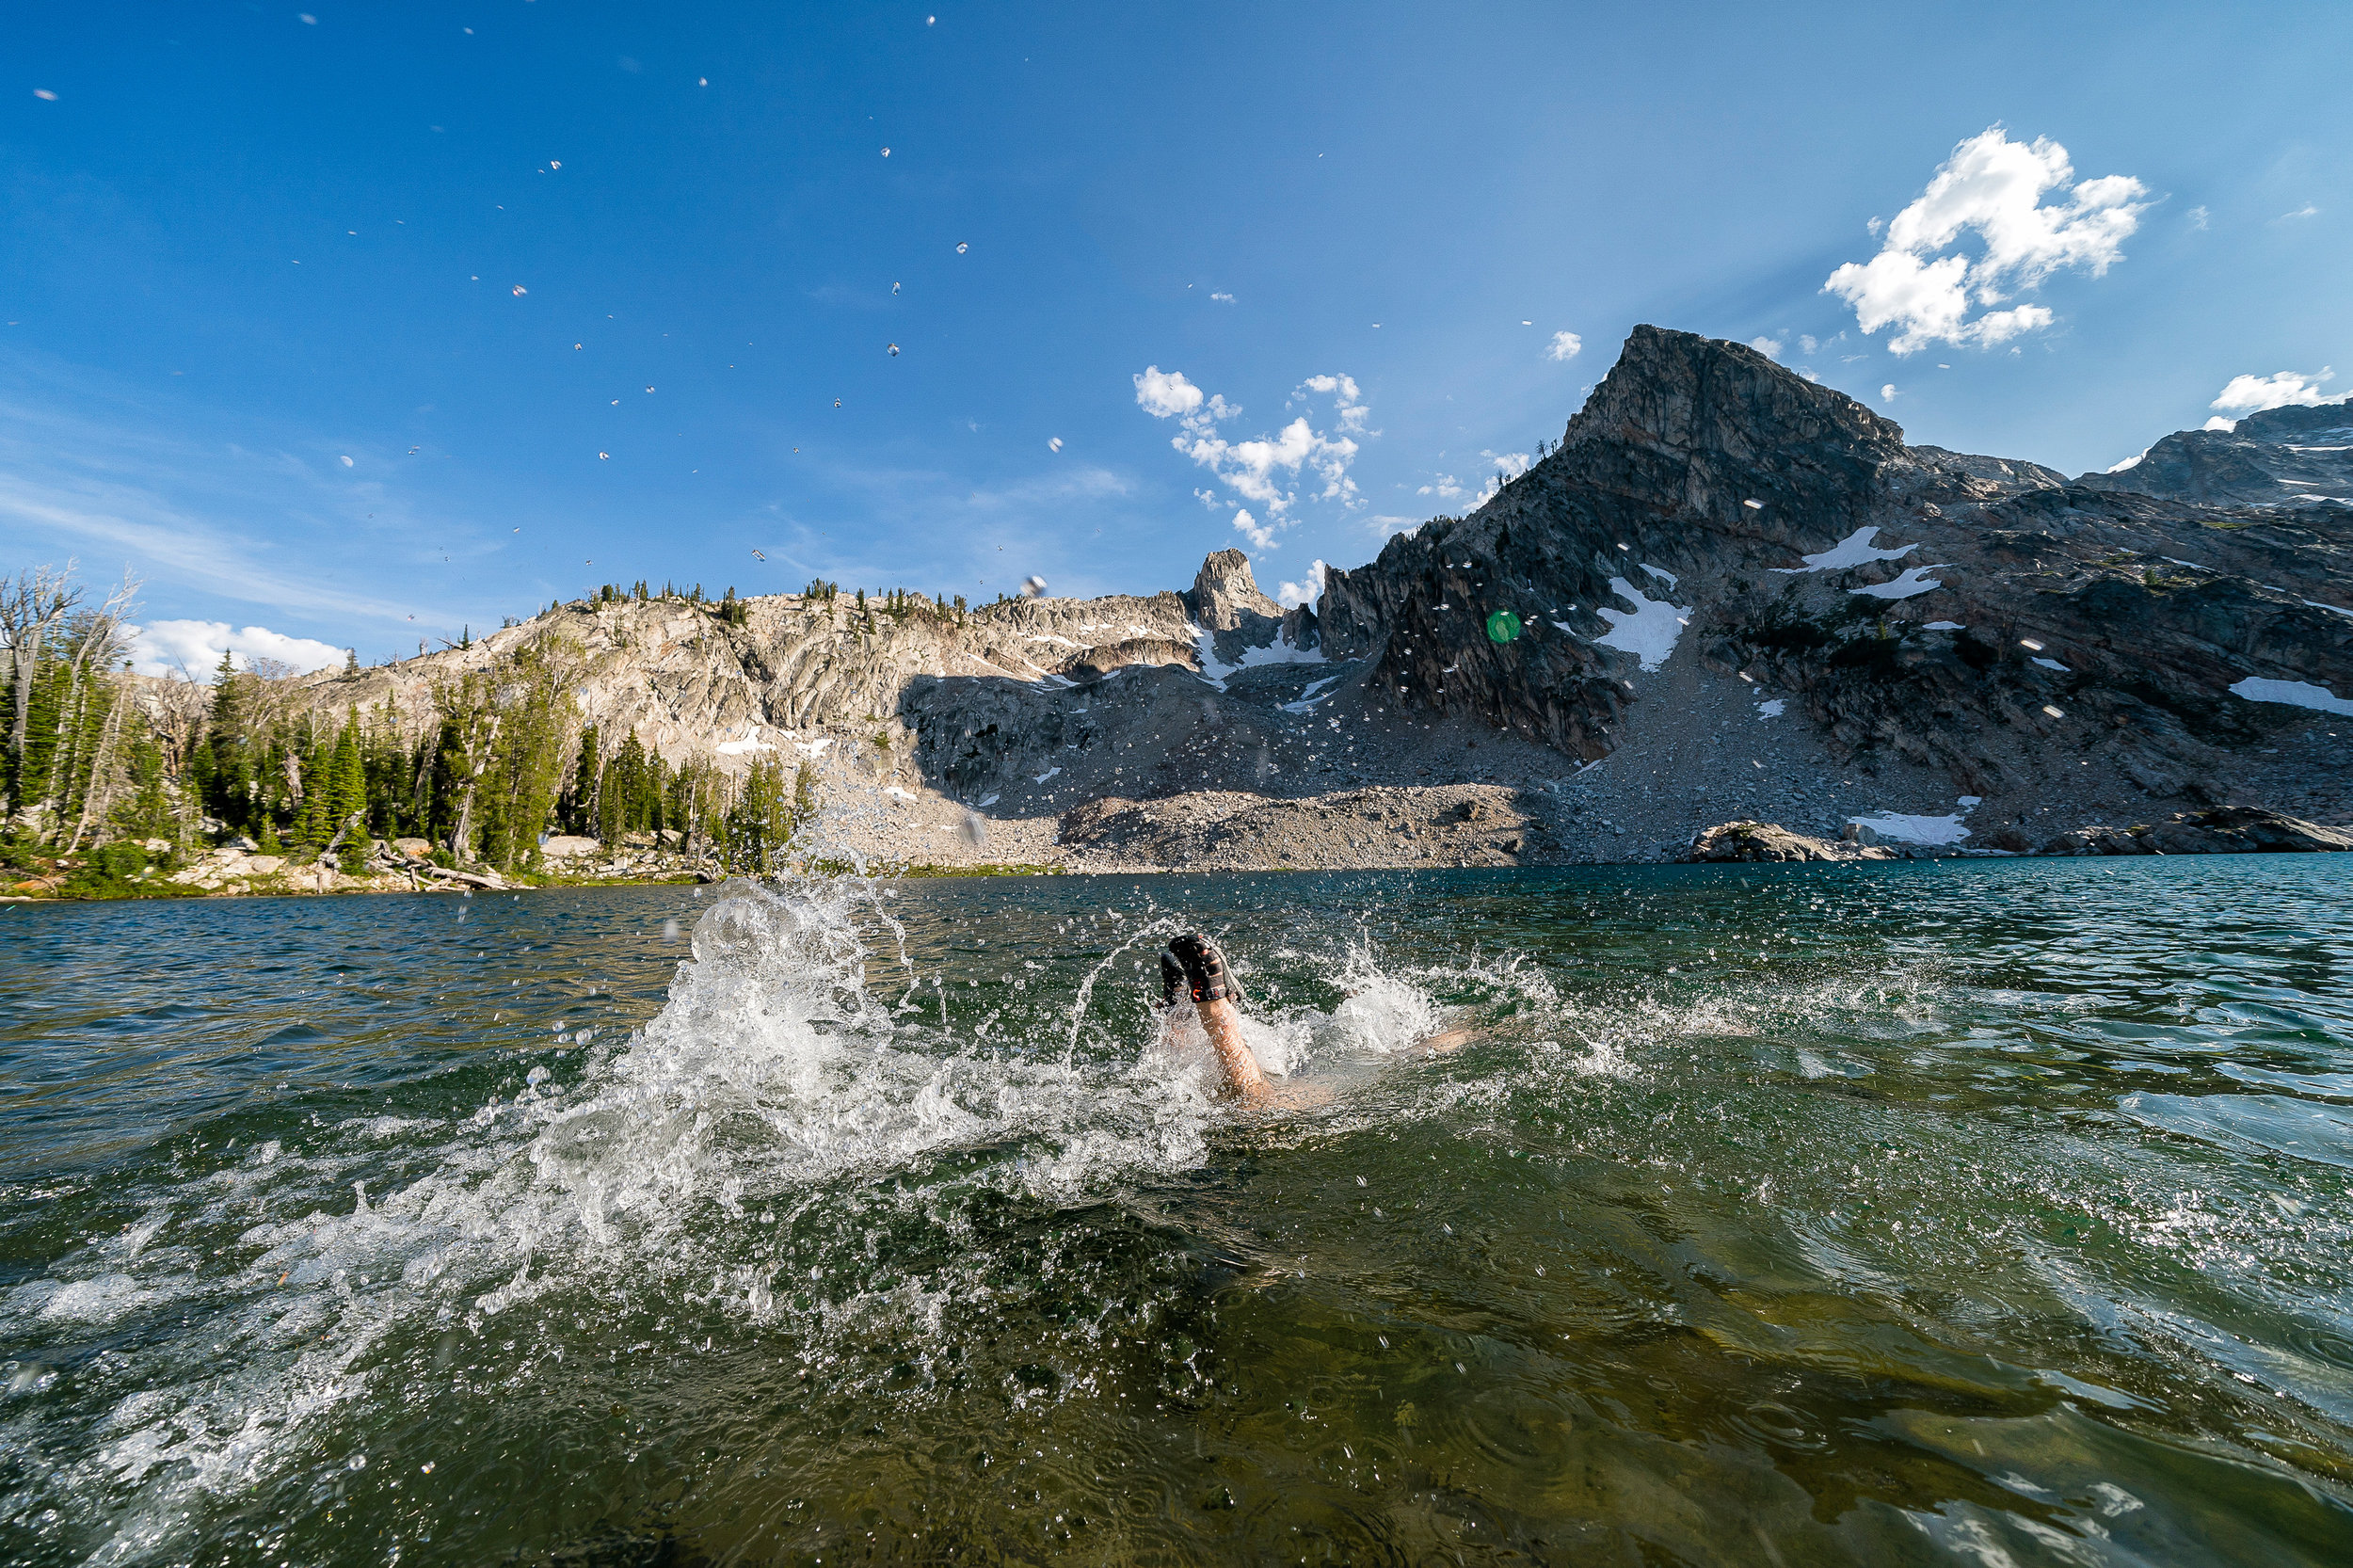 outdoor_lifestyle_Idaho_Ketchum_hiking_Stephen_Matera_7-21-18_DSC4540.jpg